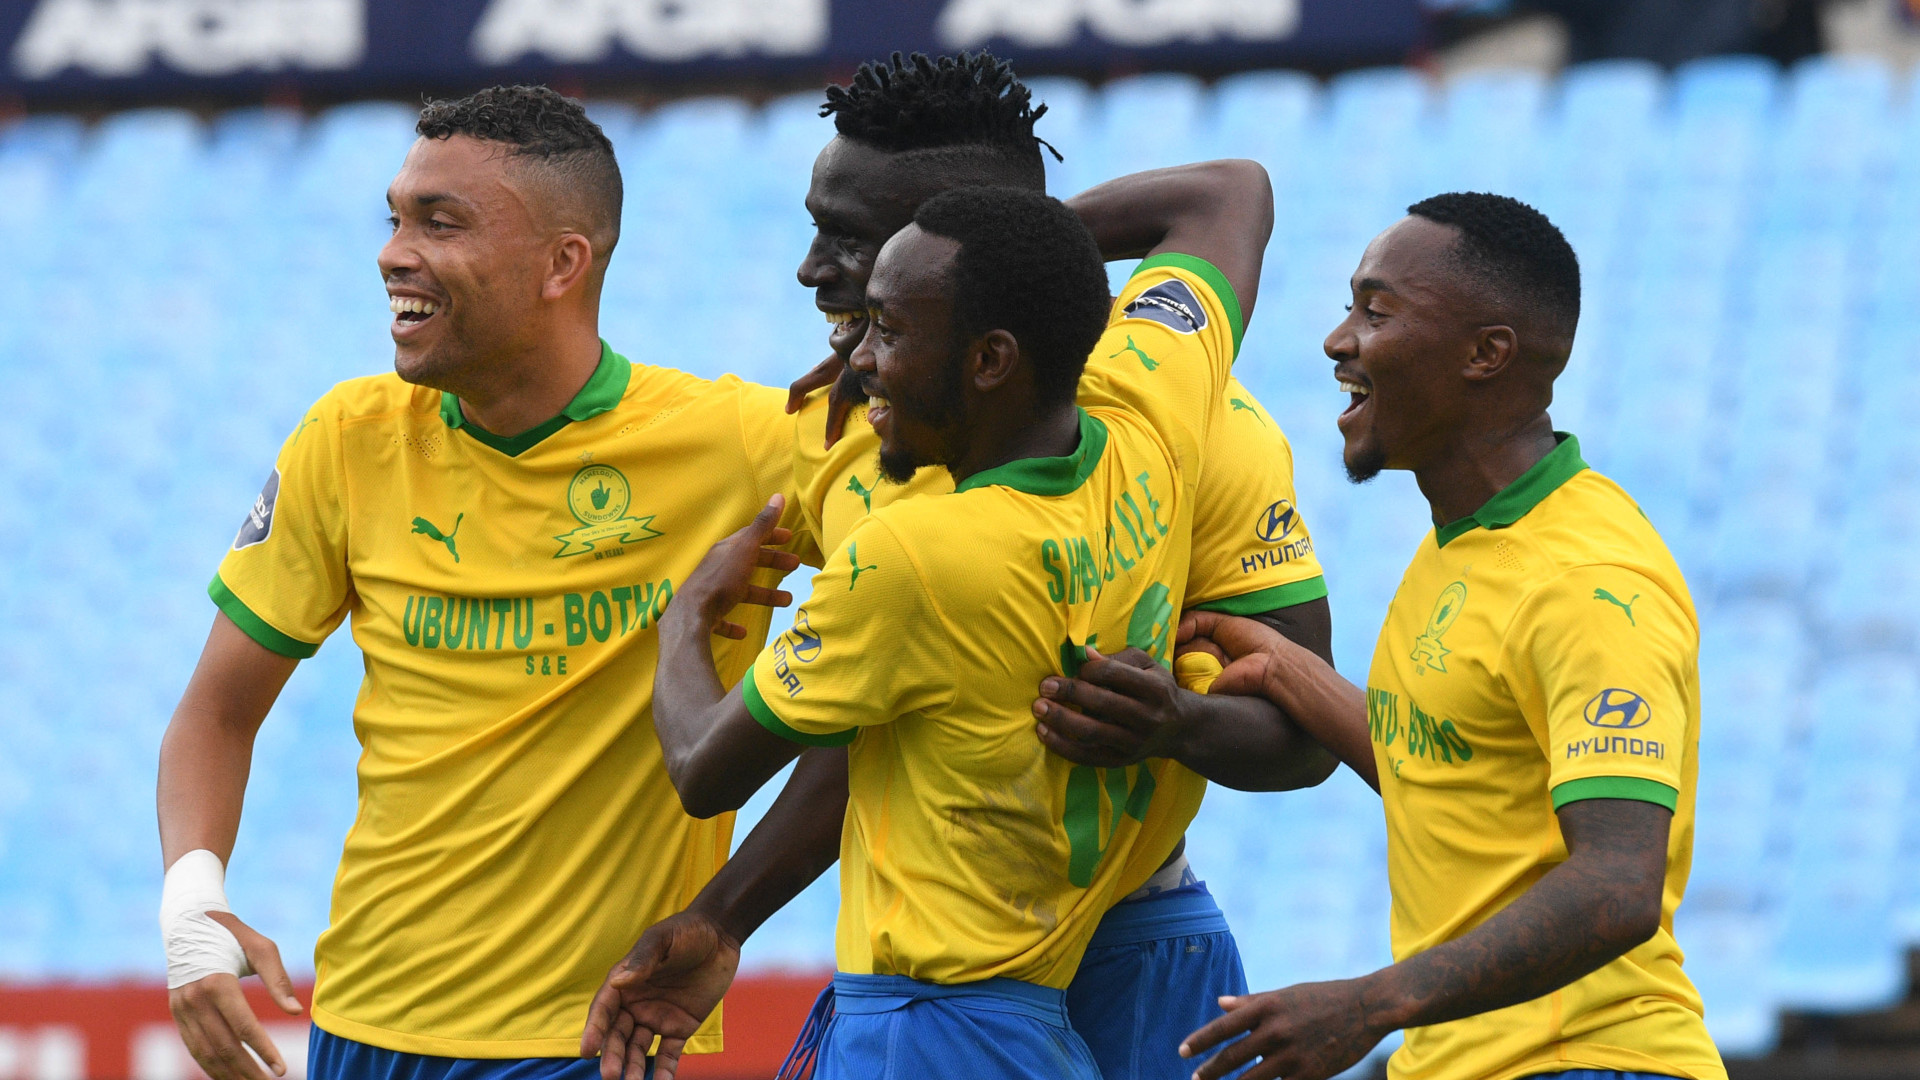 Mamelodi Sundowns vs Jwaneng Galaxy Preview: Kick-off time, TV channel, squad news